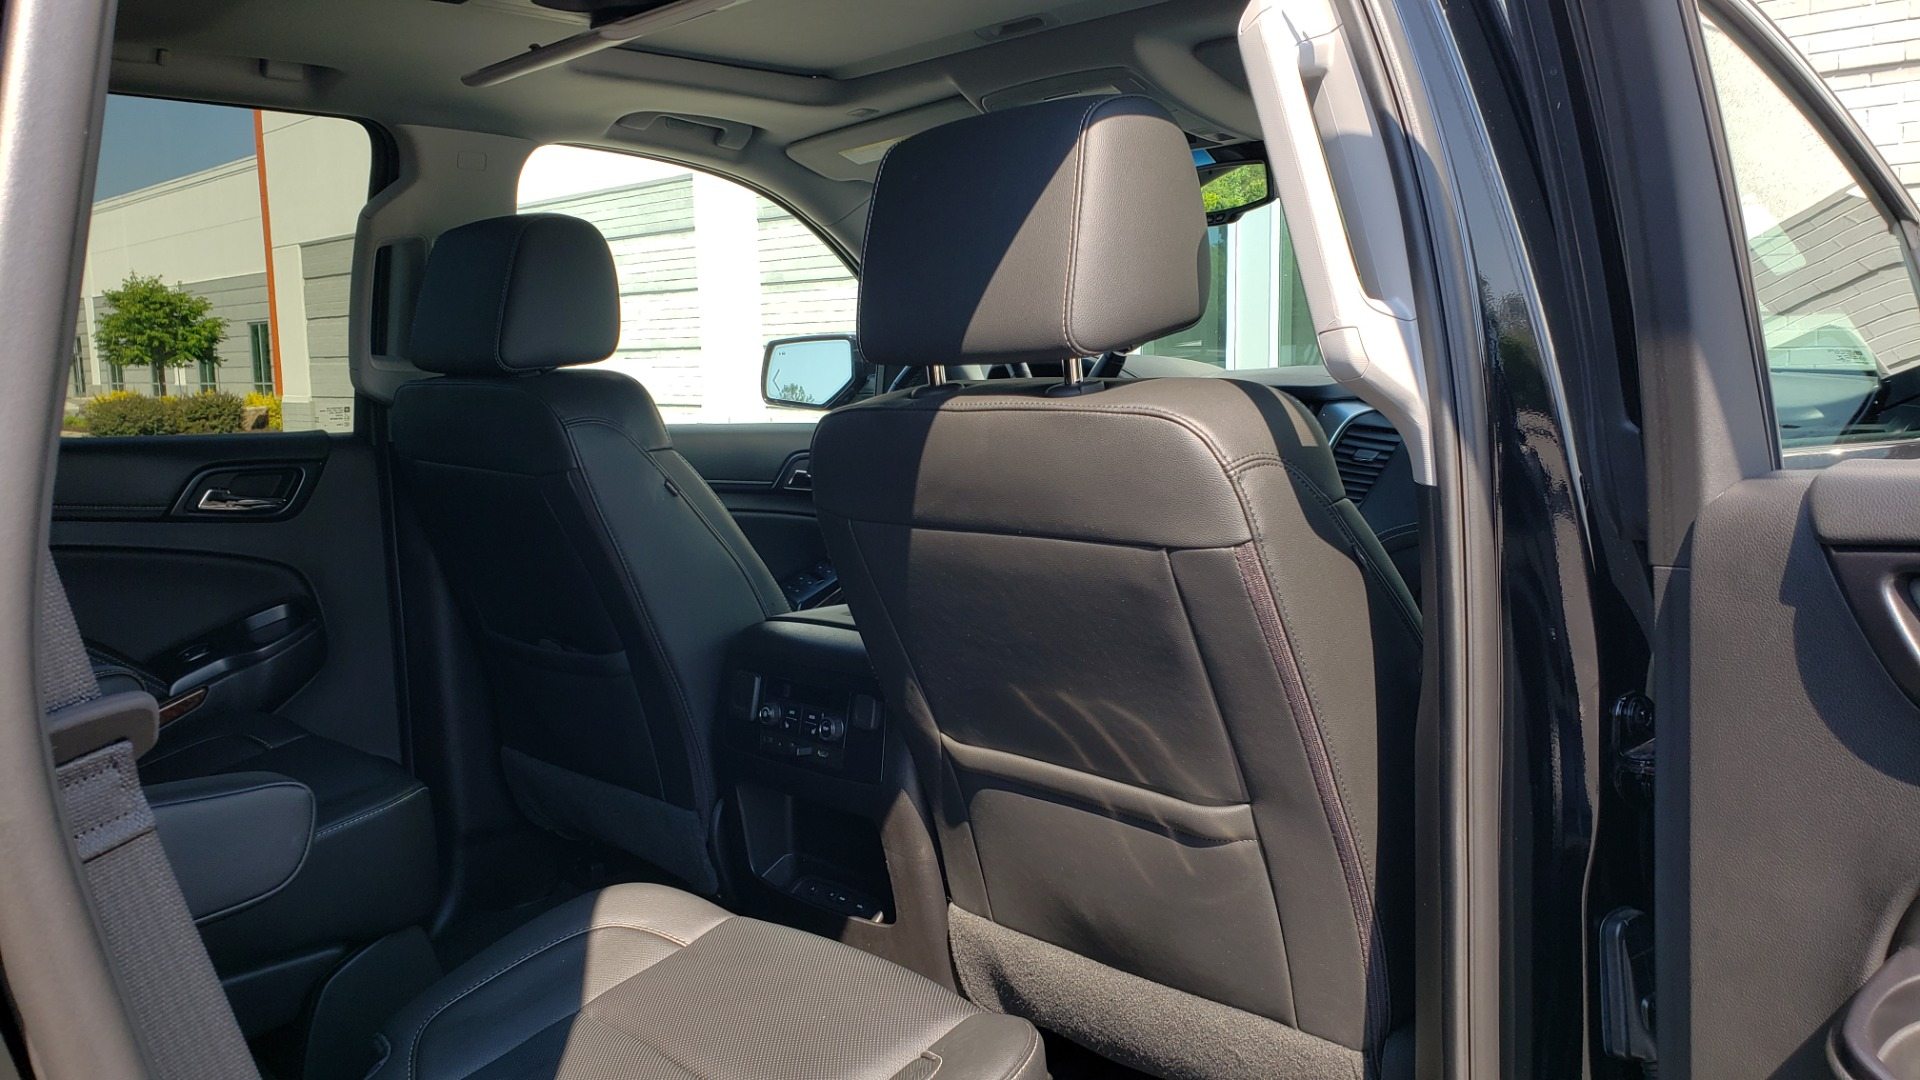 Used 2018 Chevrolet TAHOE PREMIER RST / 4X4 / NAV / BOSE / SUNROOF / 3-ROW / REARVIEW for sale $65,995 at Formula Imports in Charlotte NC 28227 80